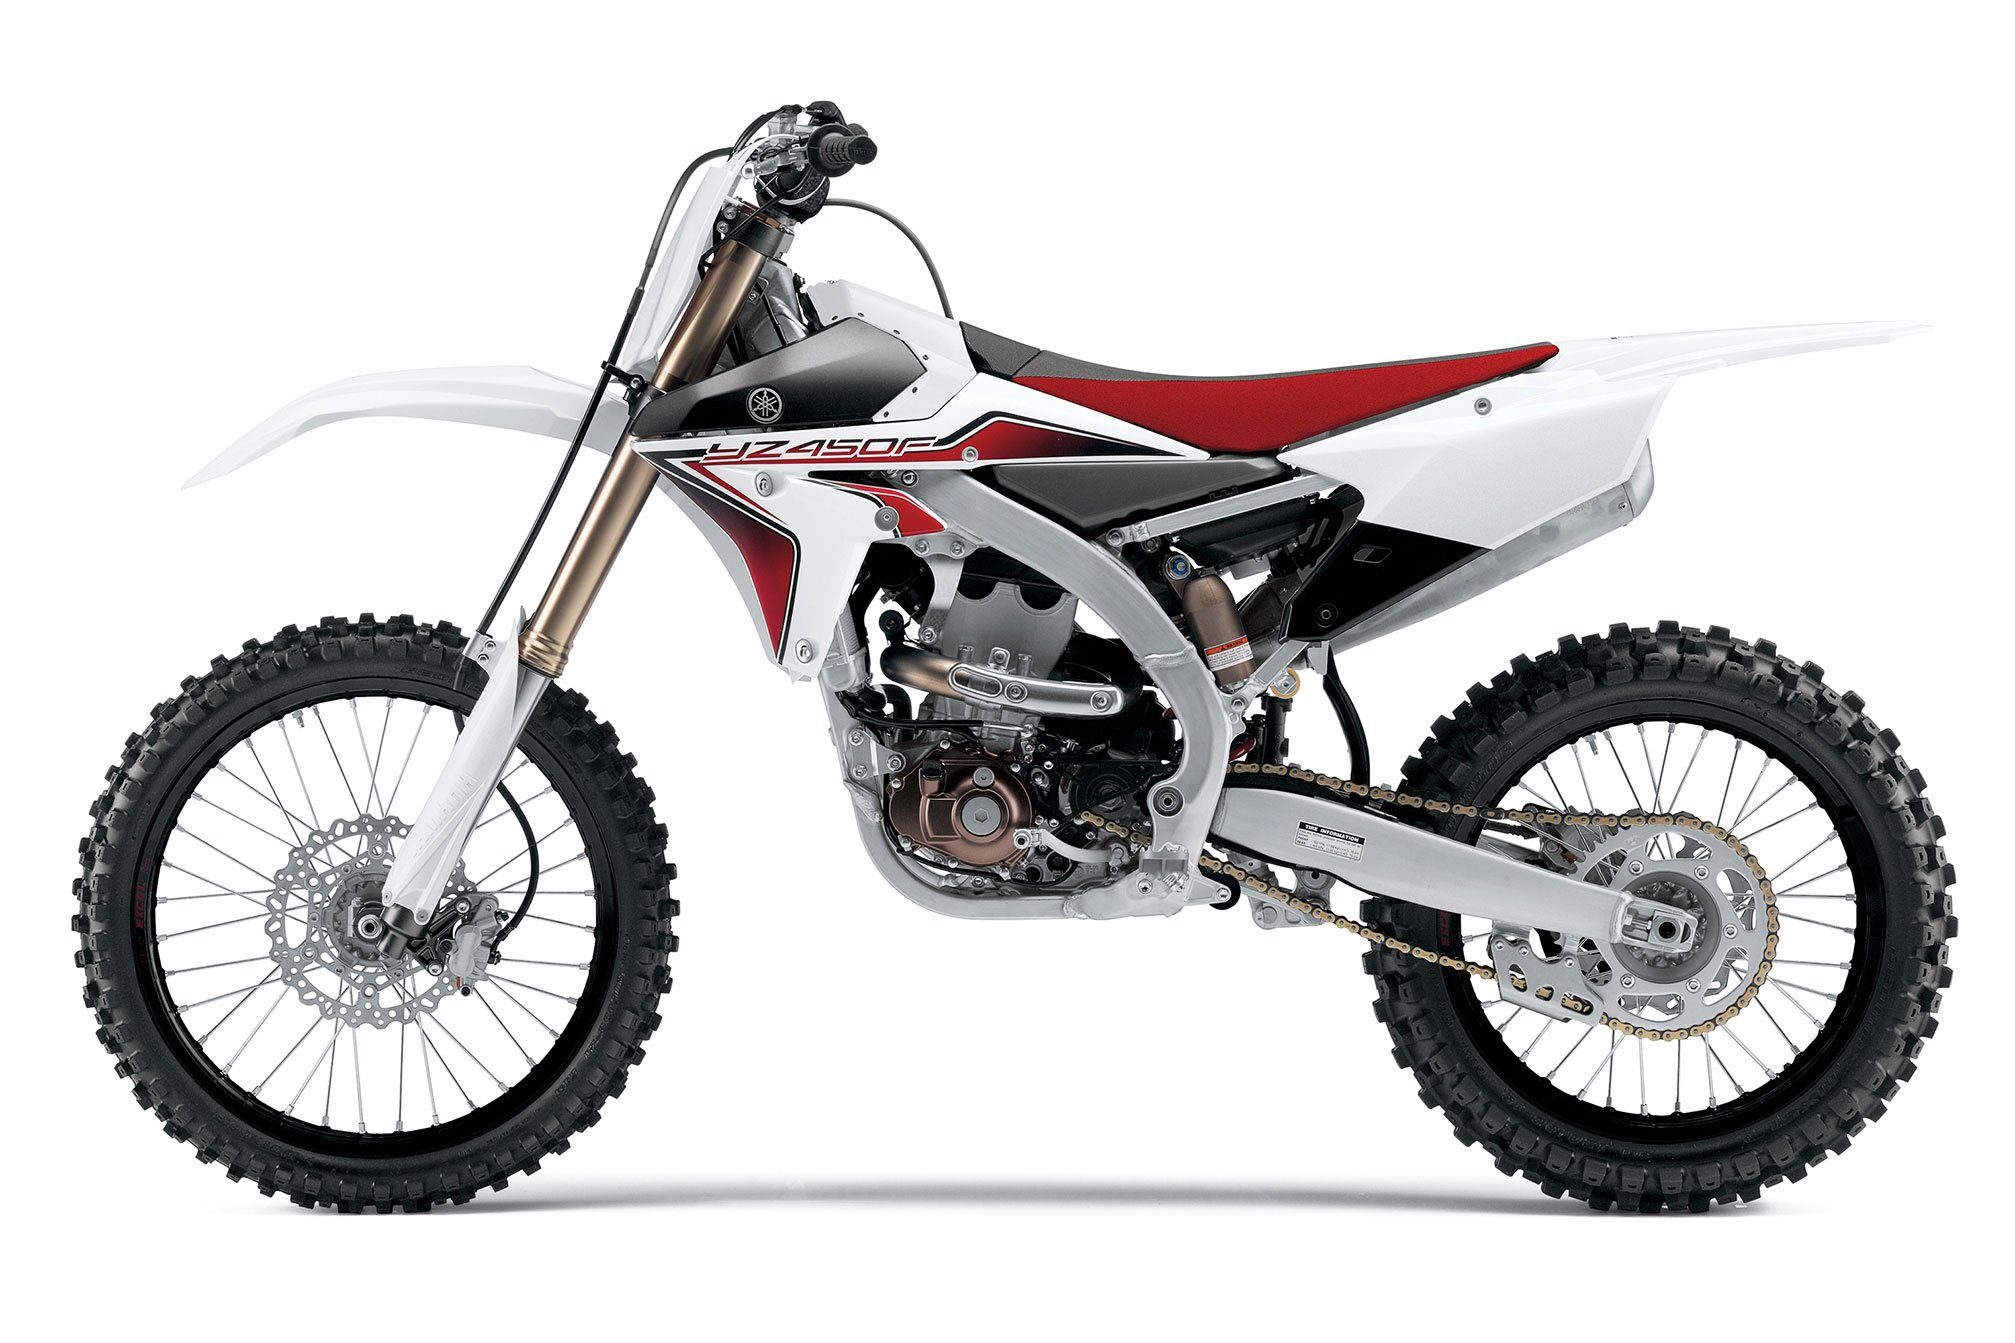 2015 Yamaha YZ450F motocross dirtbike moto wallpaper